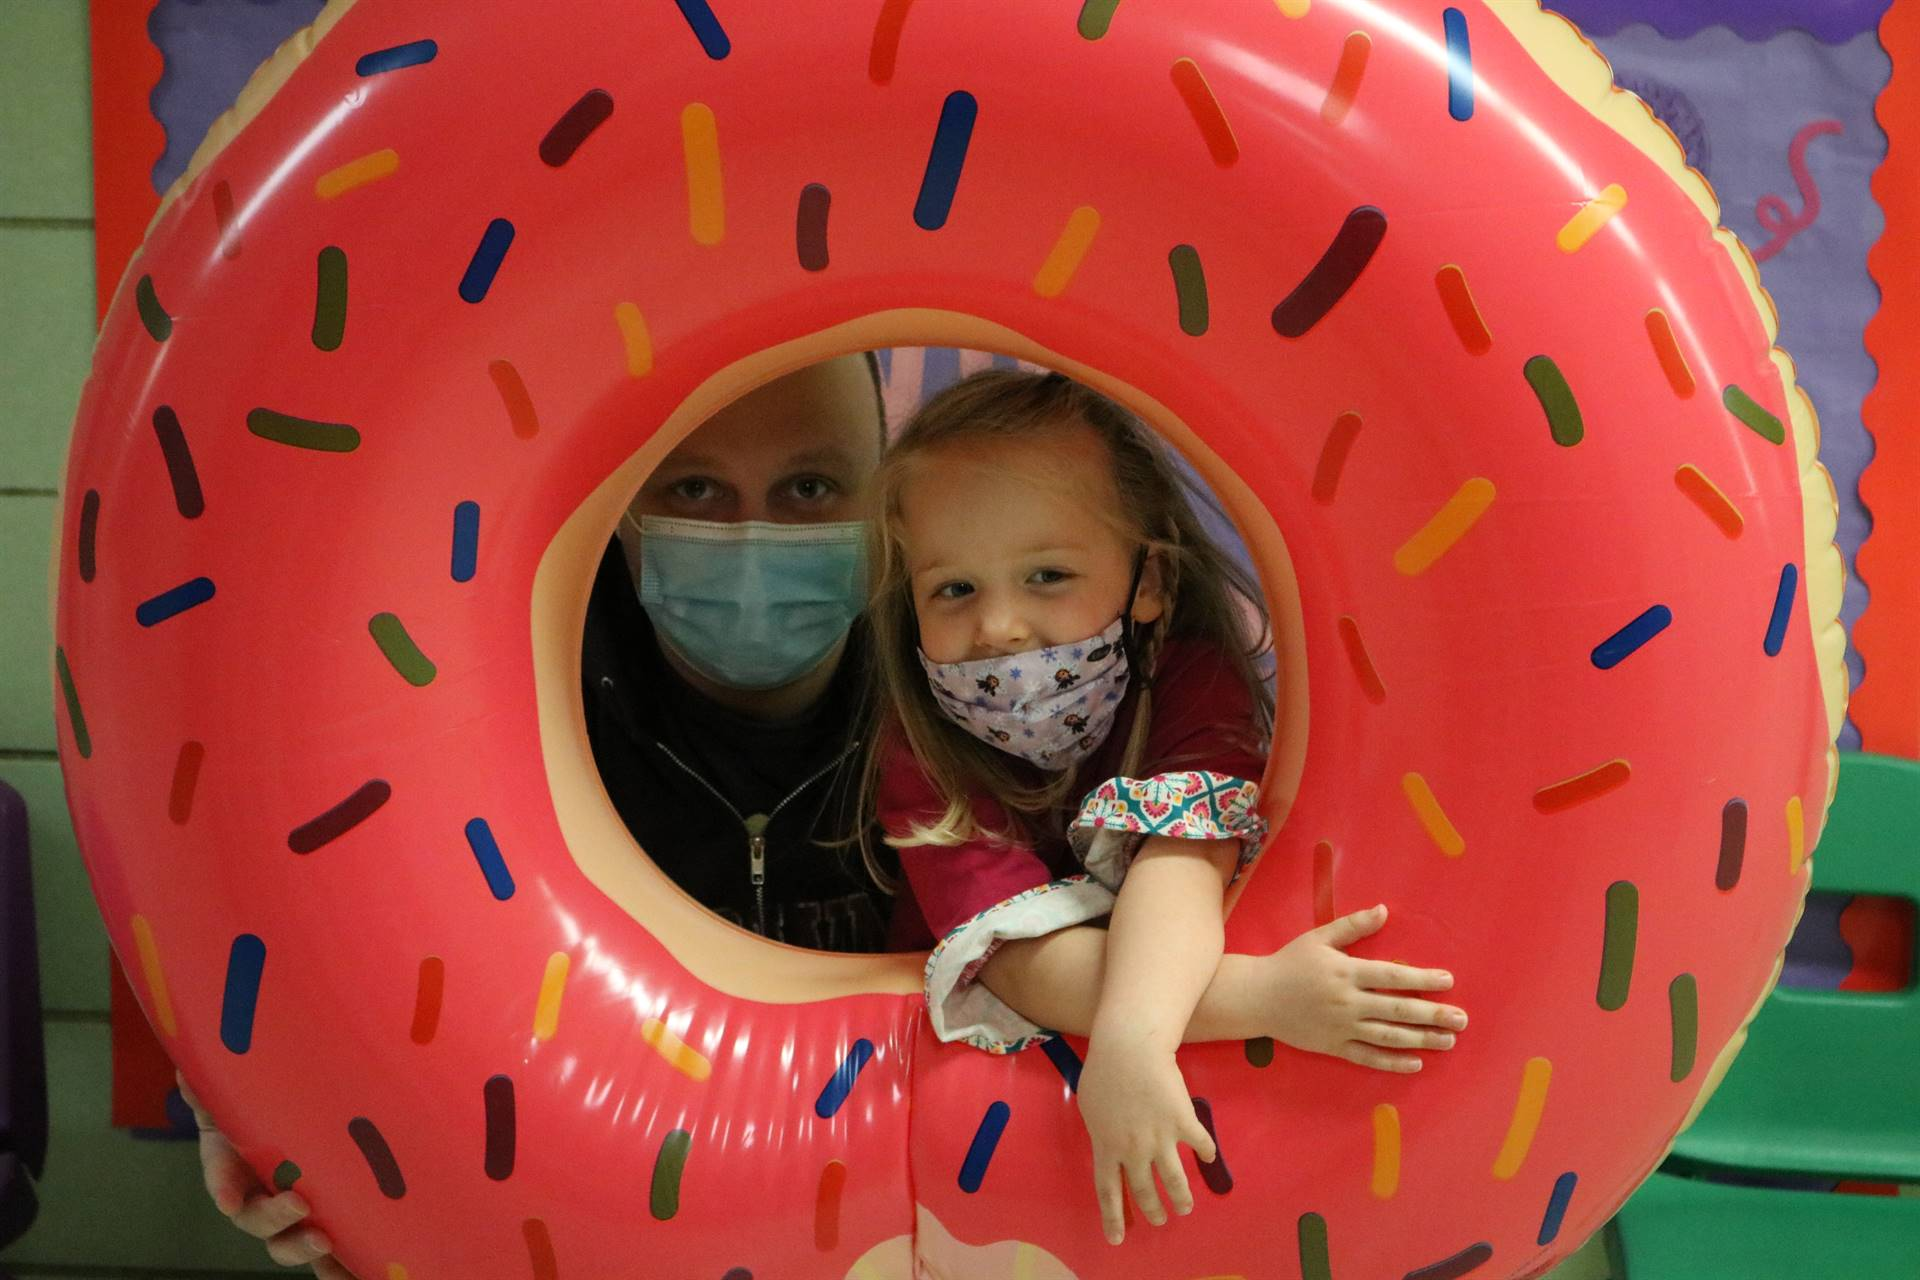 dad and girl in donut inflatable